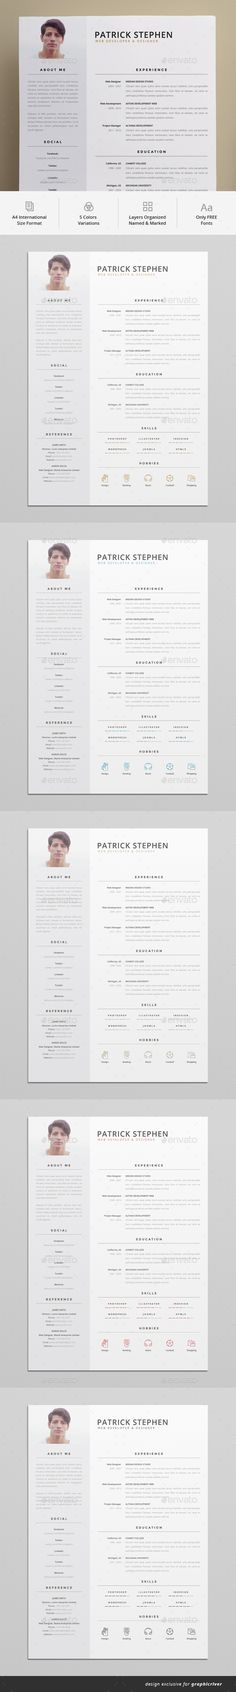 Resume A4 Template PSD - 5 Color Variations, 19 Hobbies icons